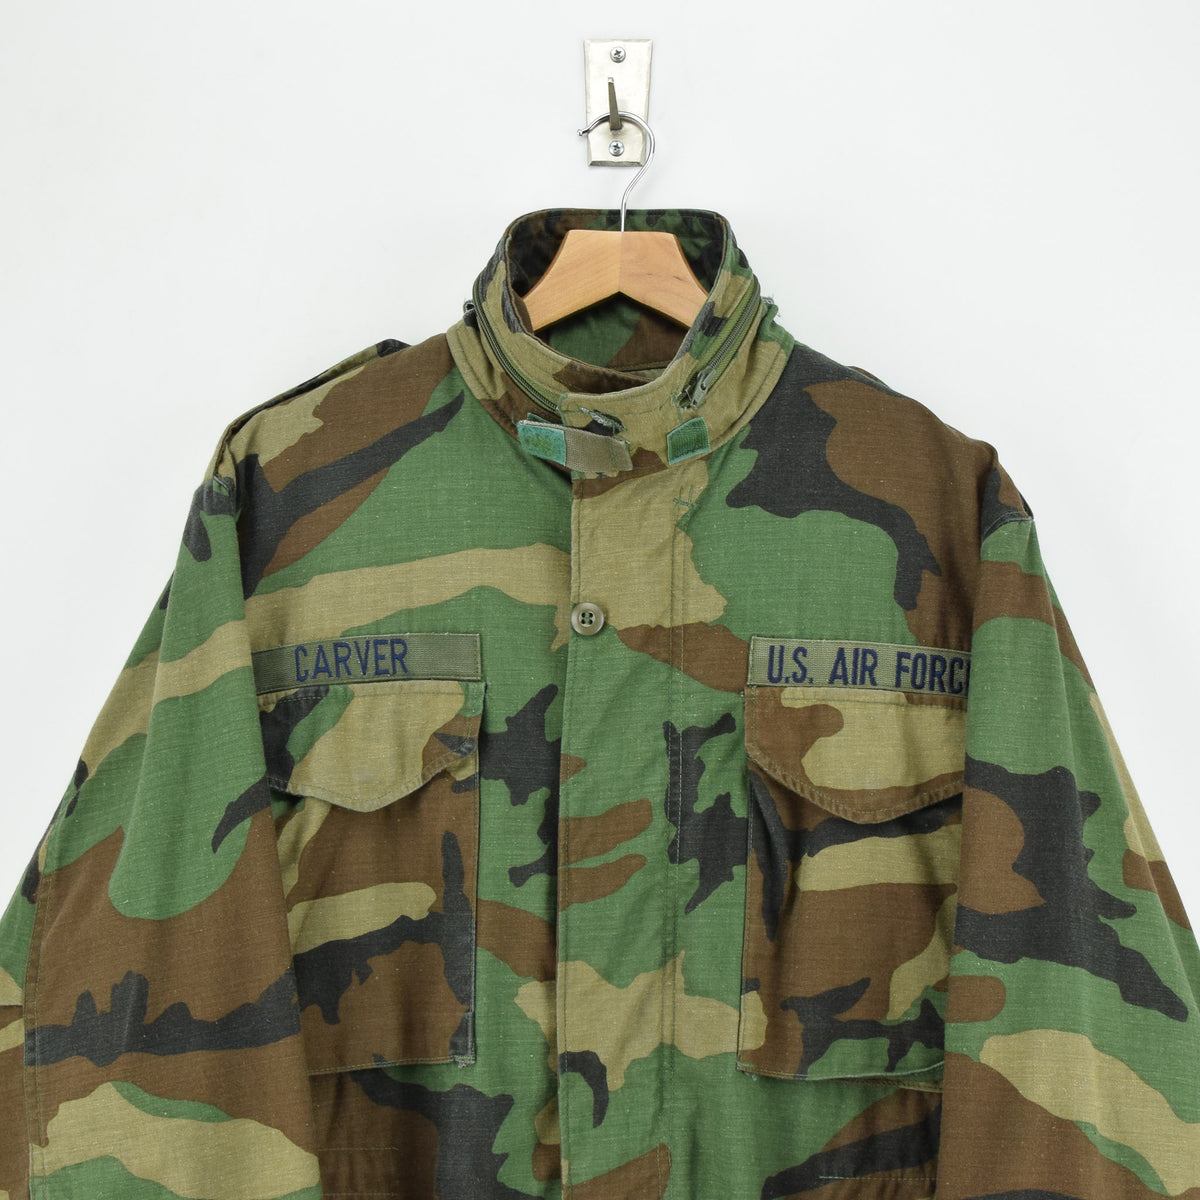 Vintage 80s M-65 Woodland Camouflage Field Coat Military US Air Force Jacket M chest